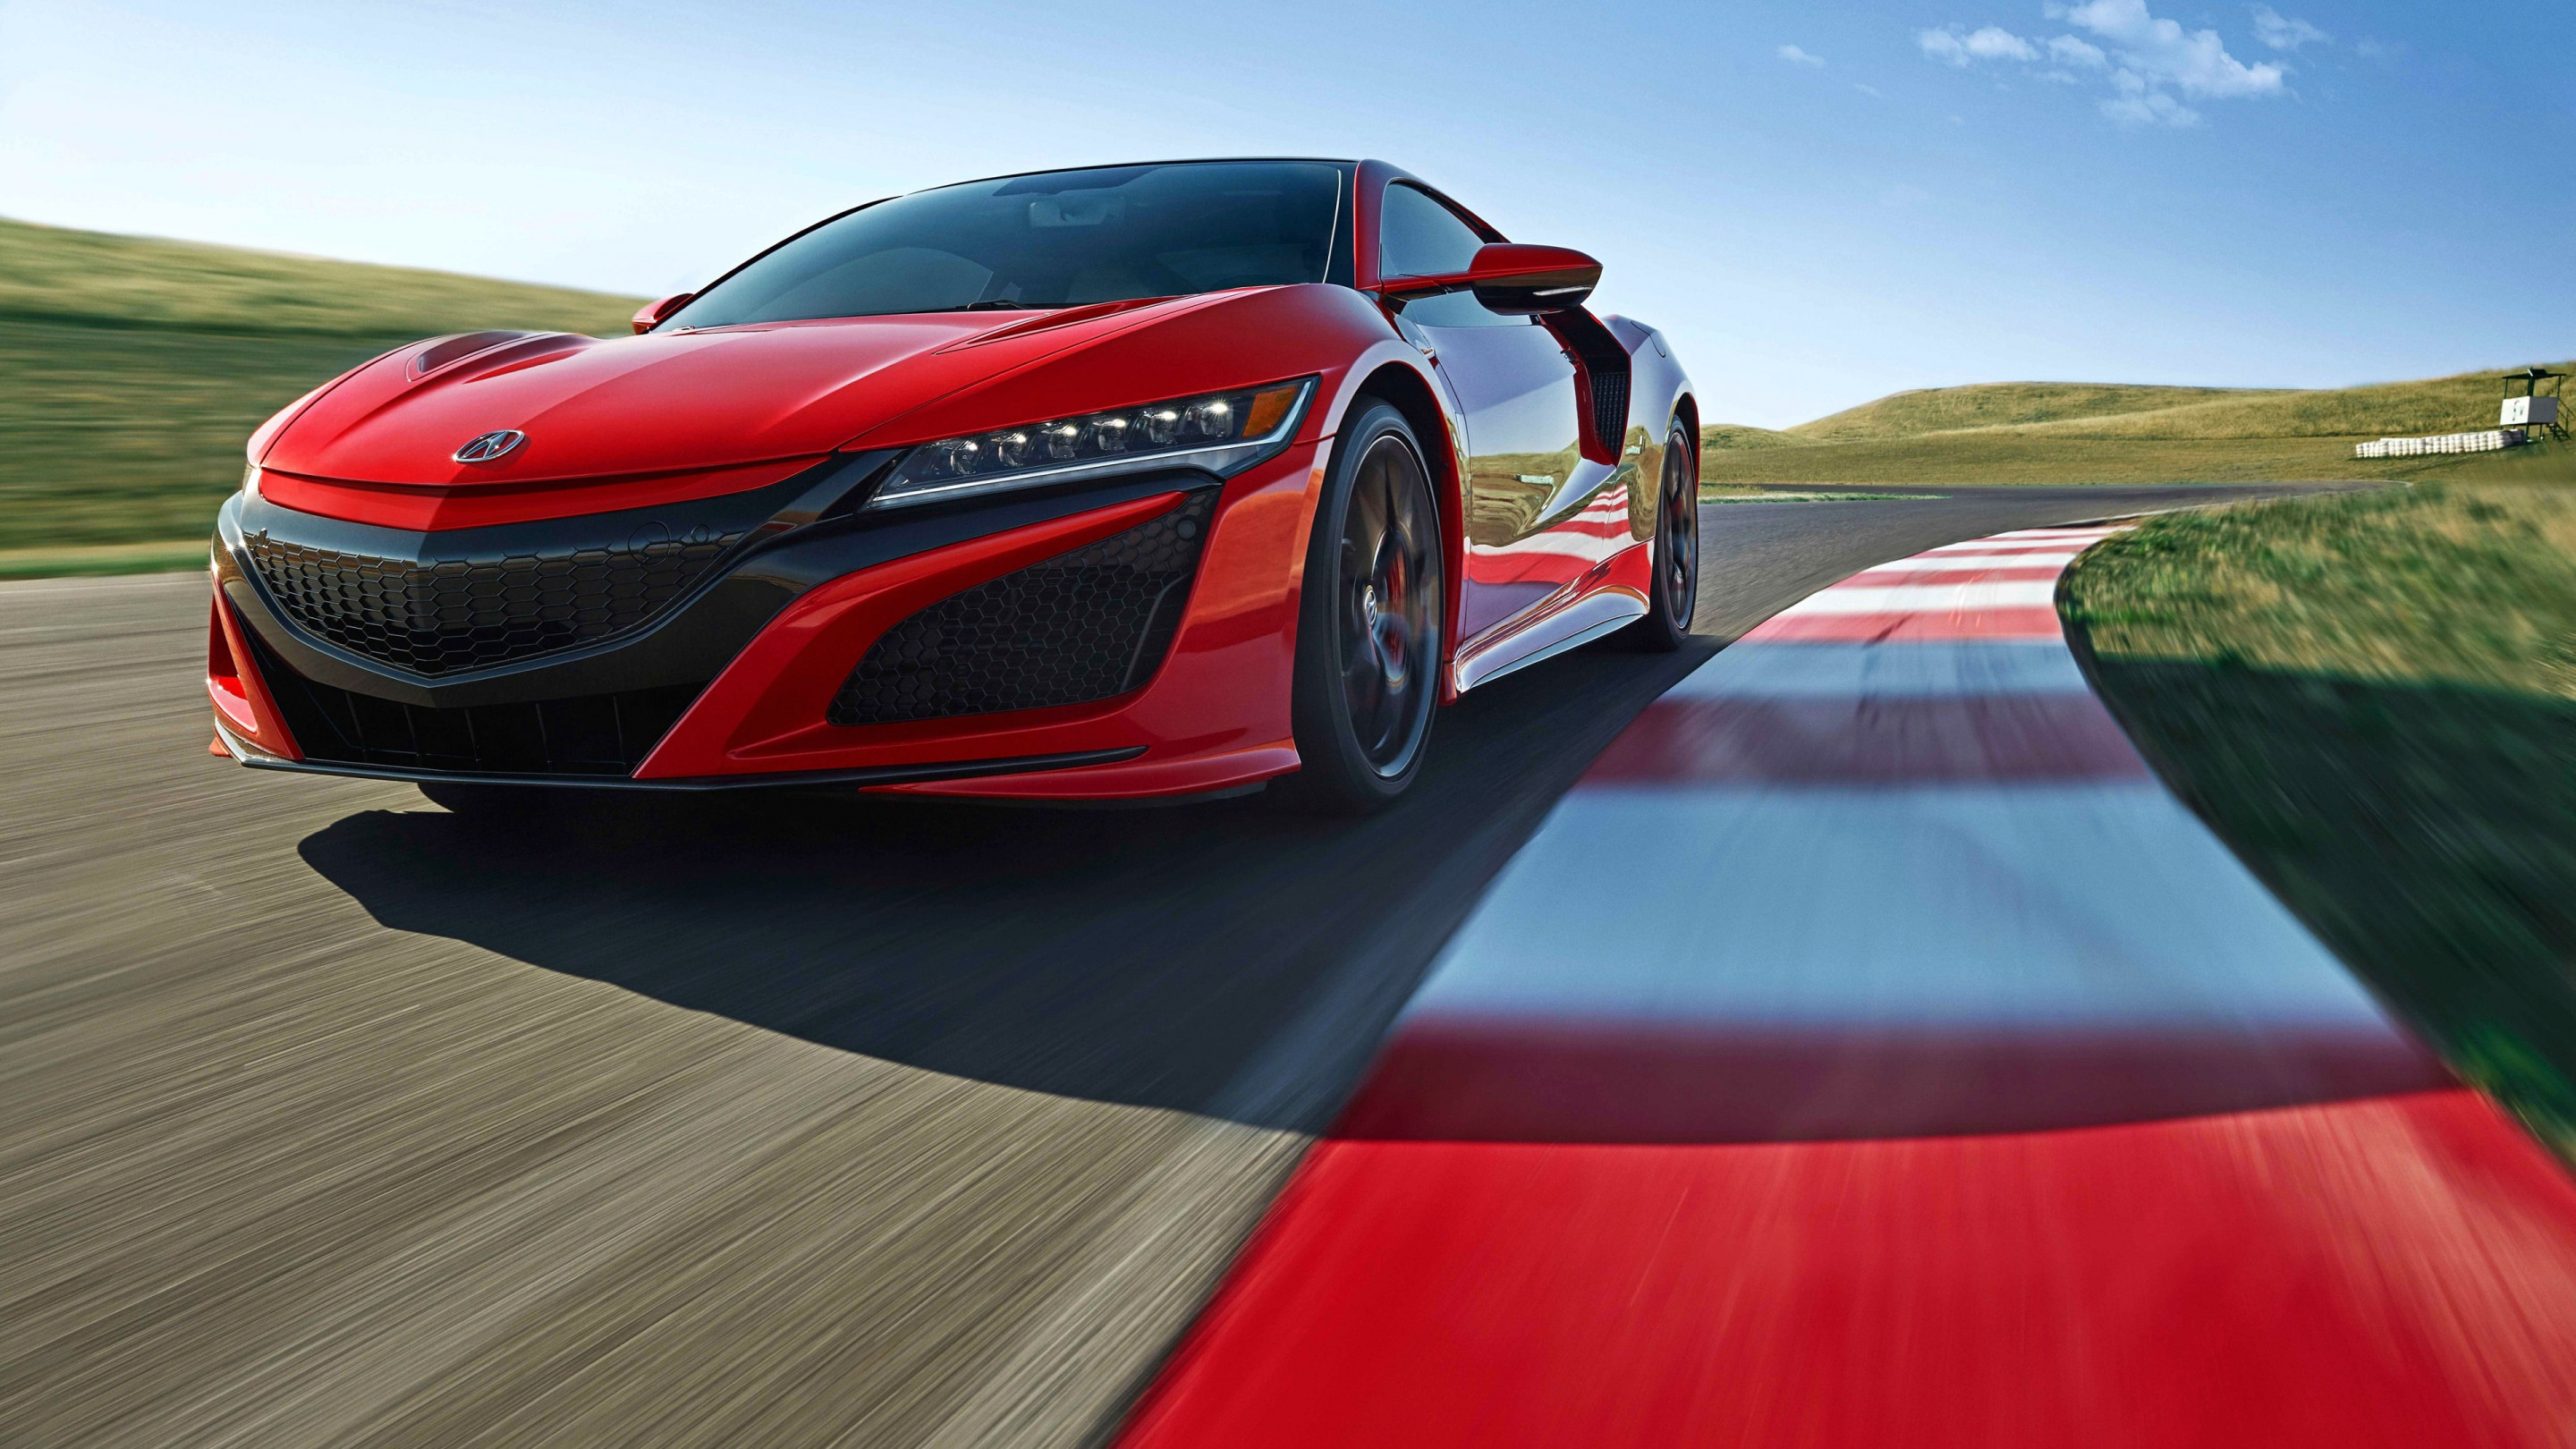 Acura NSX wallpaper 2880x1620